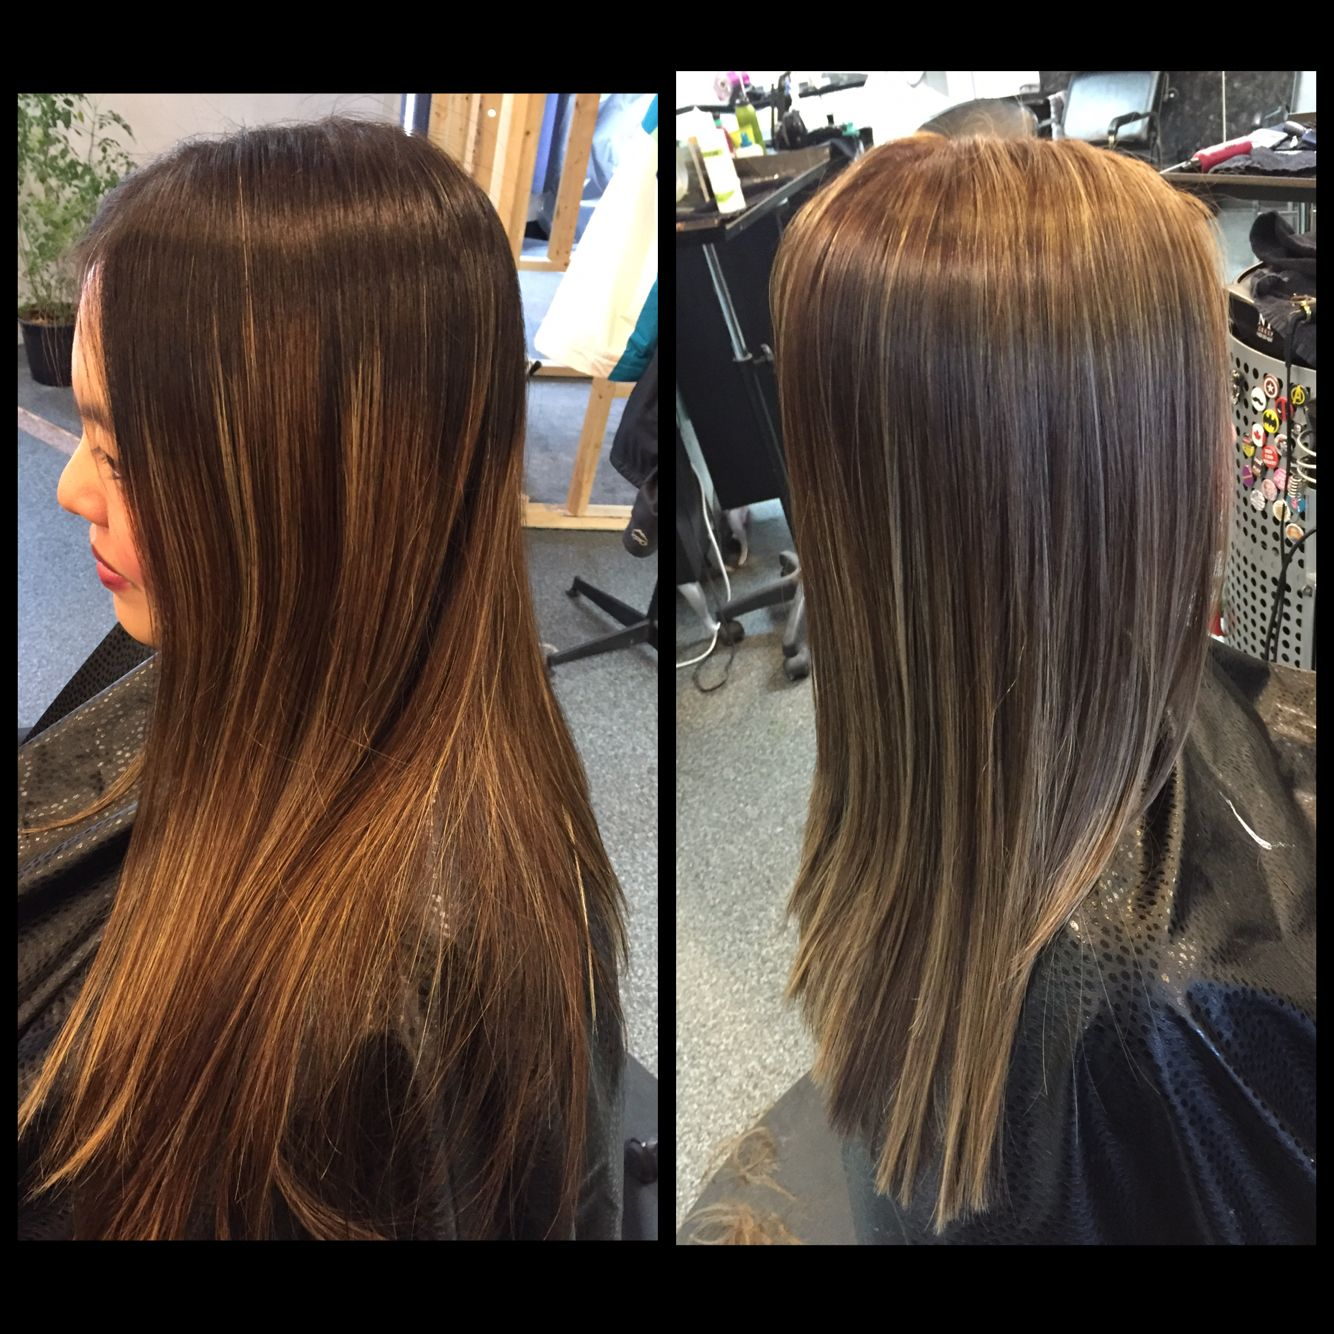 Before and after 3 4 inch root touch up she has lots of fine inch root touch up she has lots of fine highlights pmusecretfo Gallery